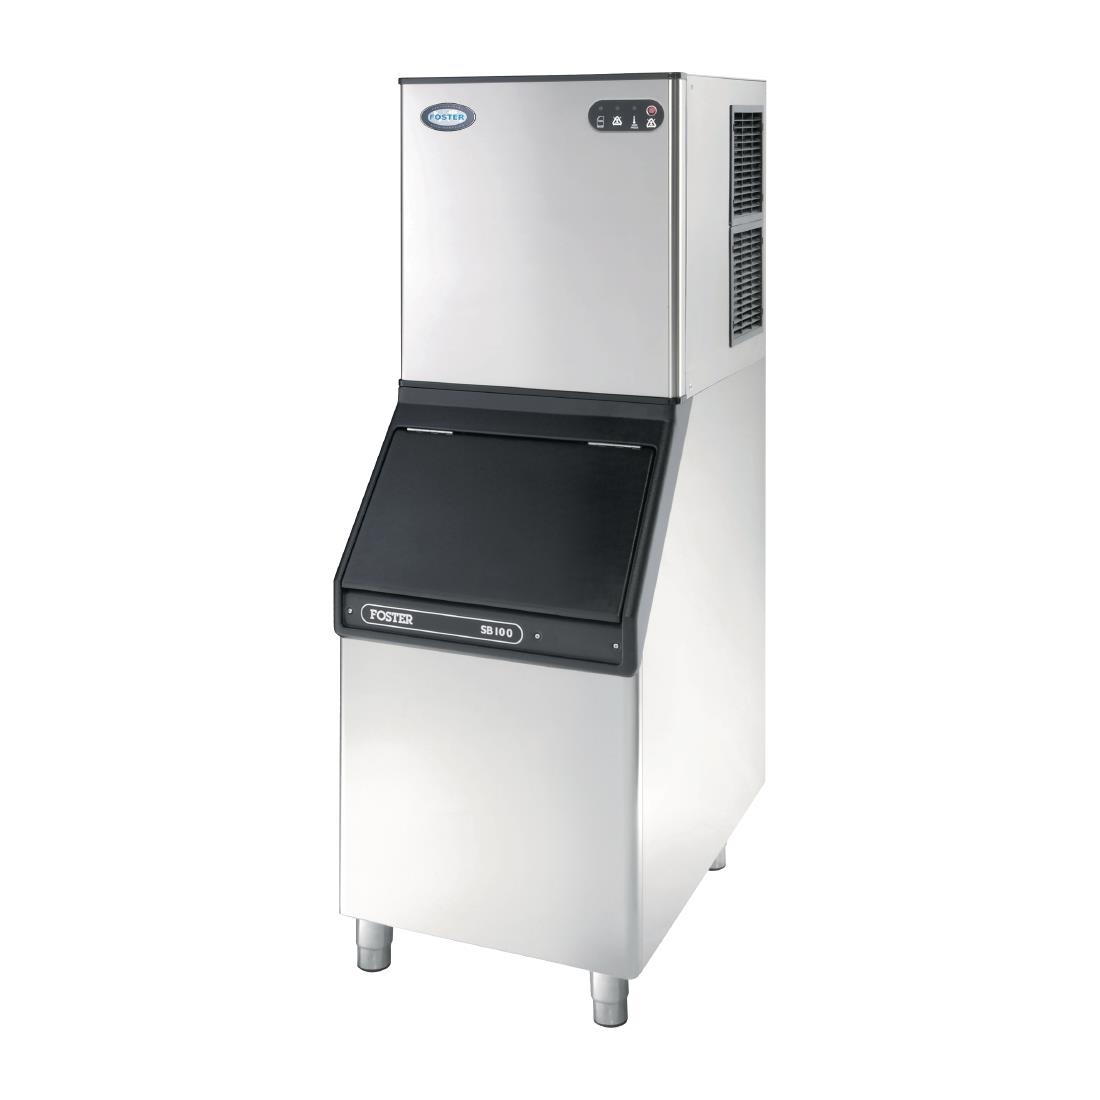 Image of Foster Modular Air-Cooled Ice Maker F132 with SB105 Bin